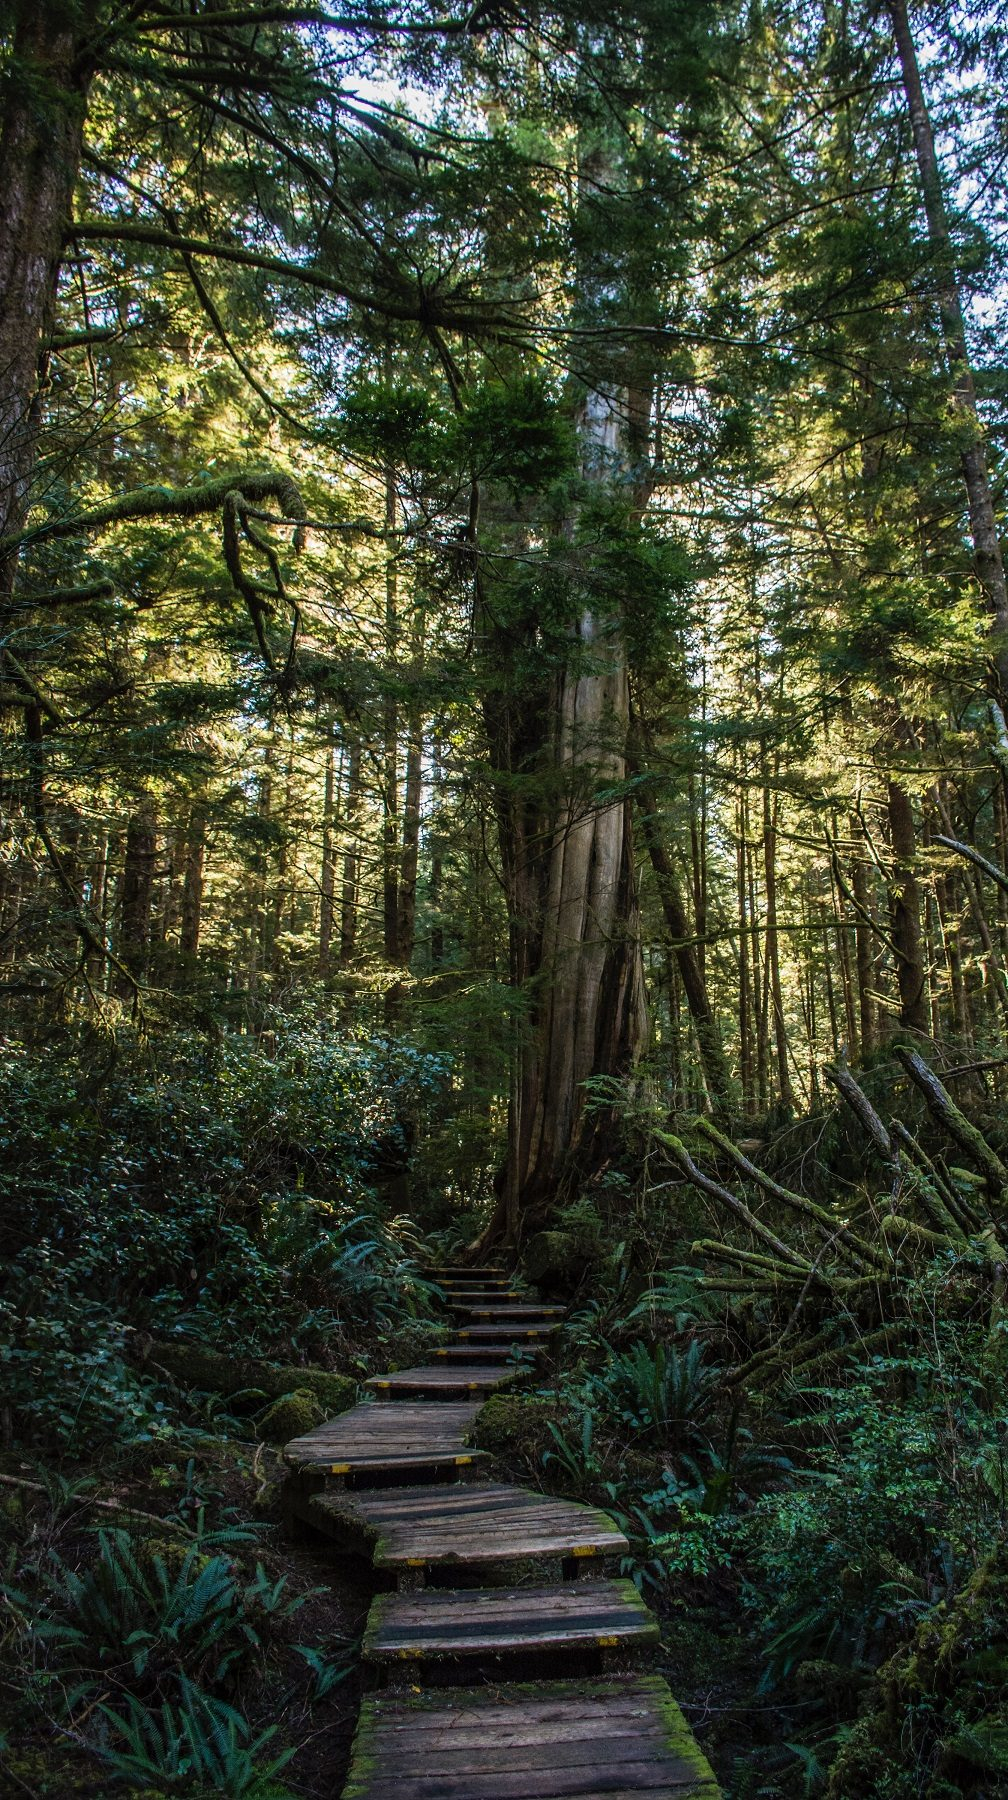 Pacific Rim trail -From Tofino to Banff: a 14-Day Itinerary in Western Canada